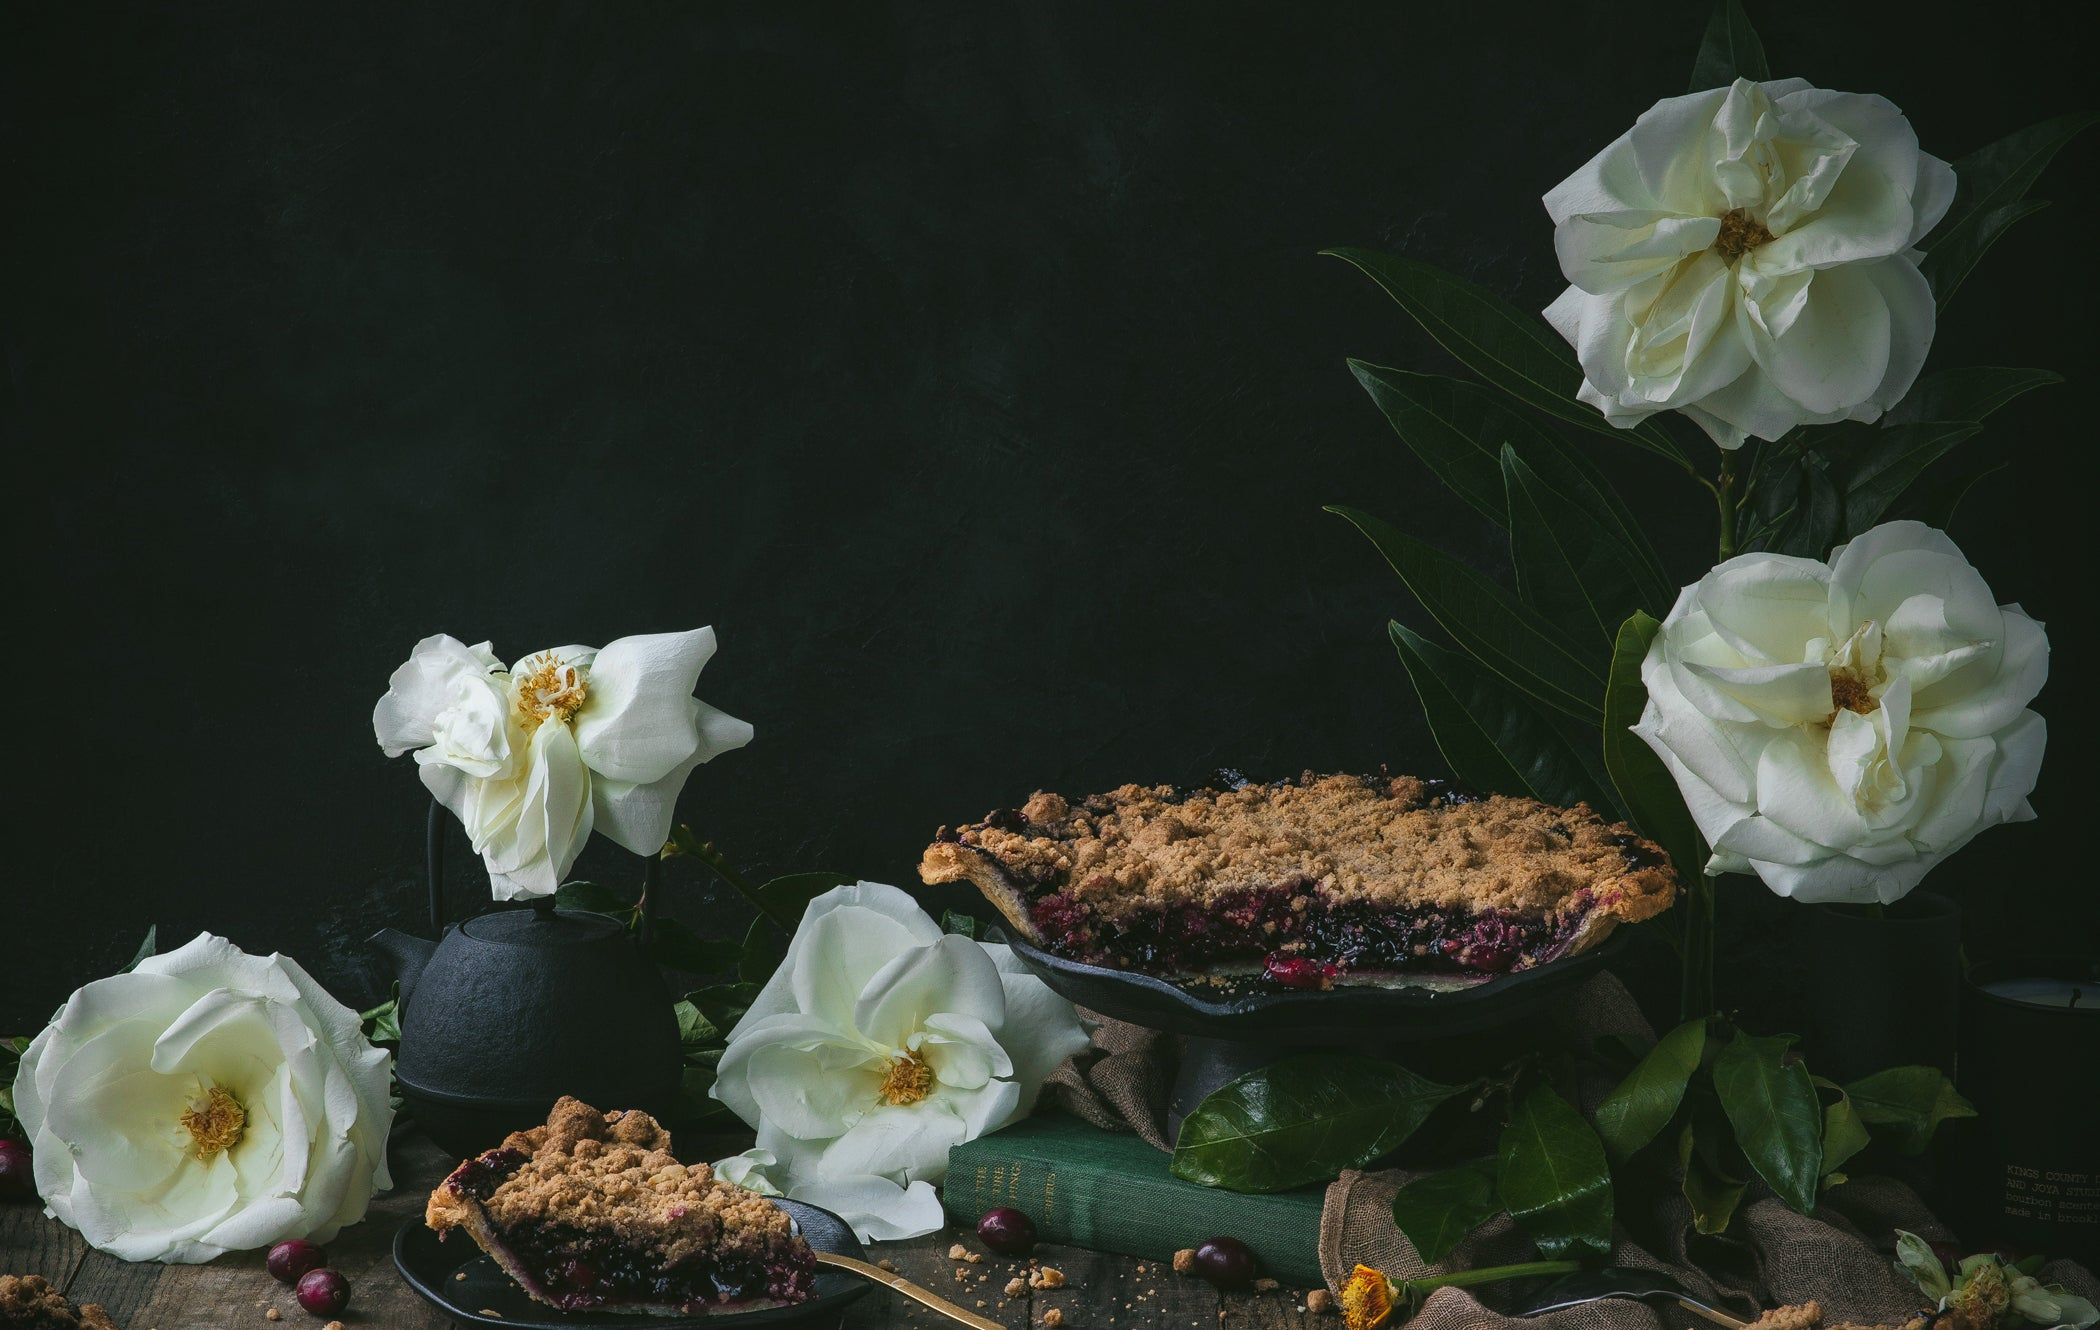 still life photograph with white flower and kettle